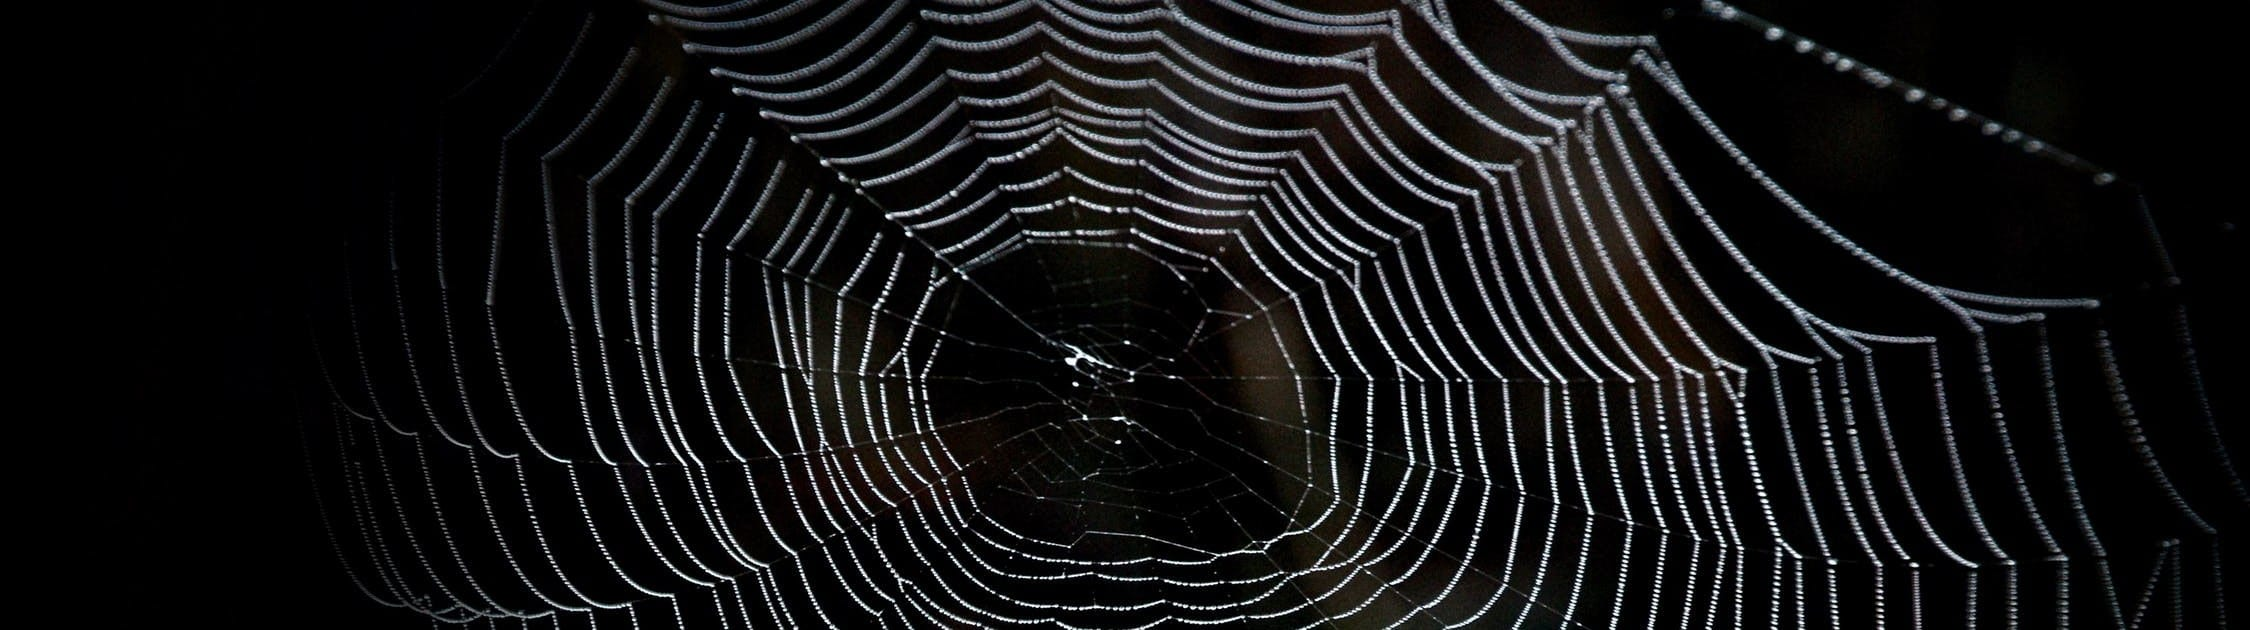 Spider web against black background.